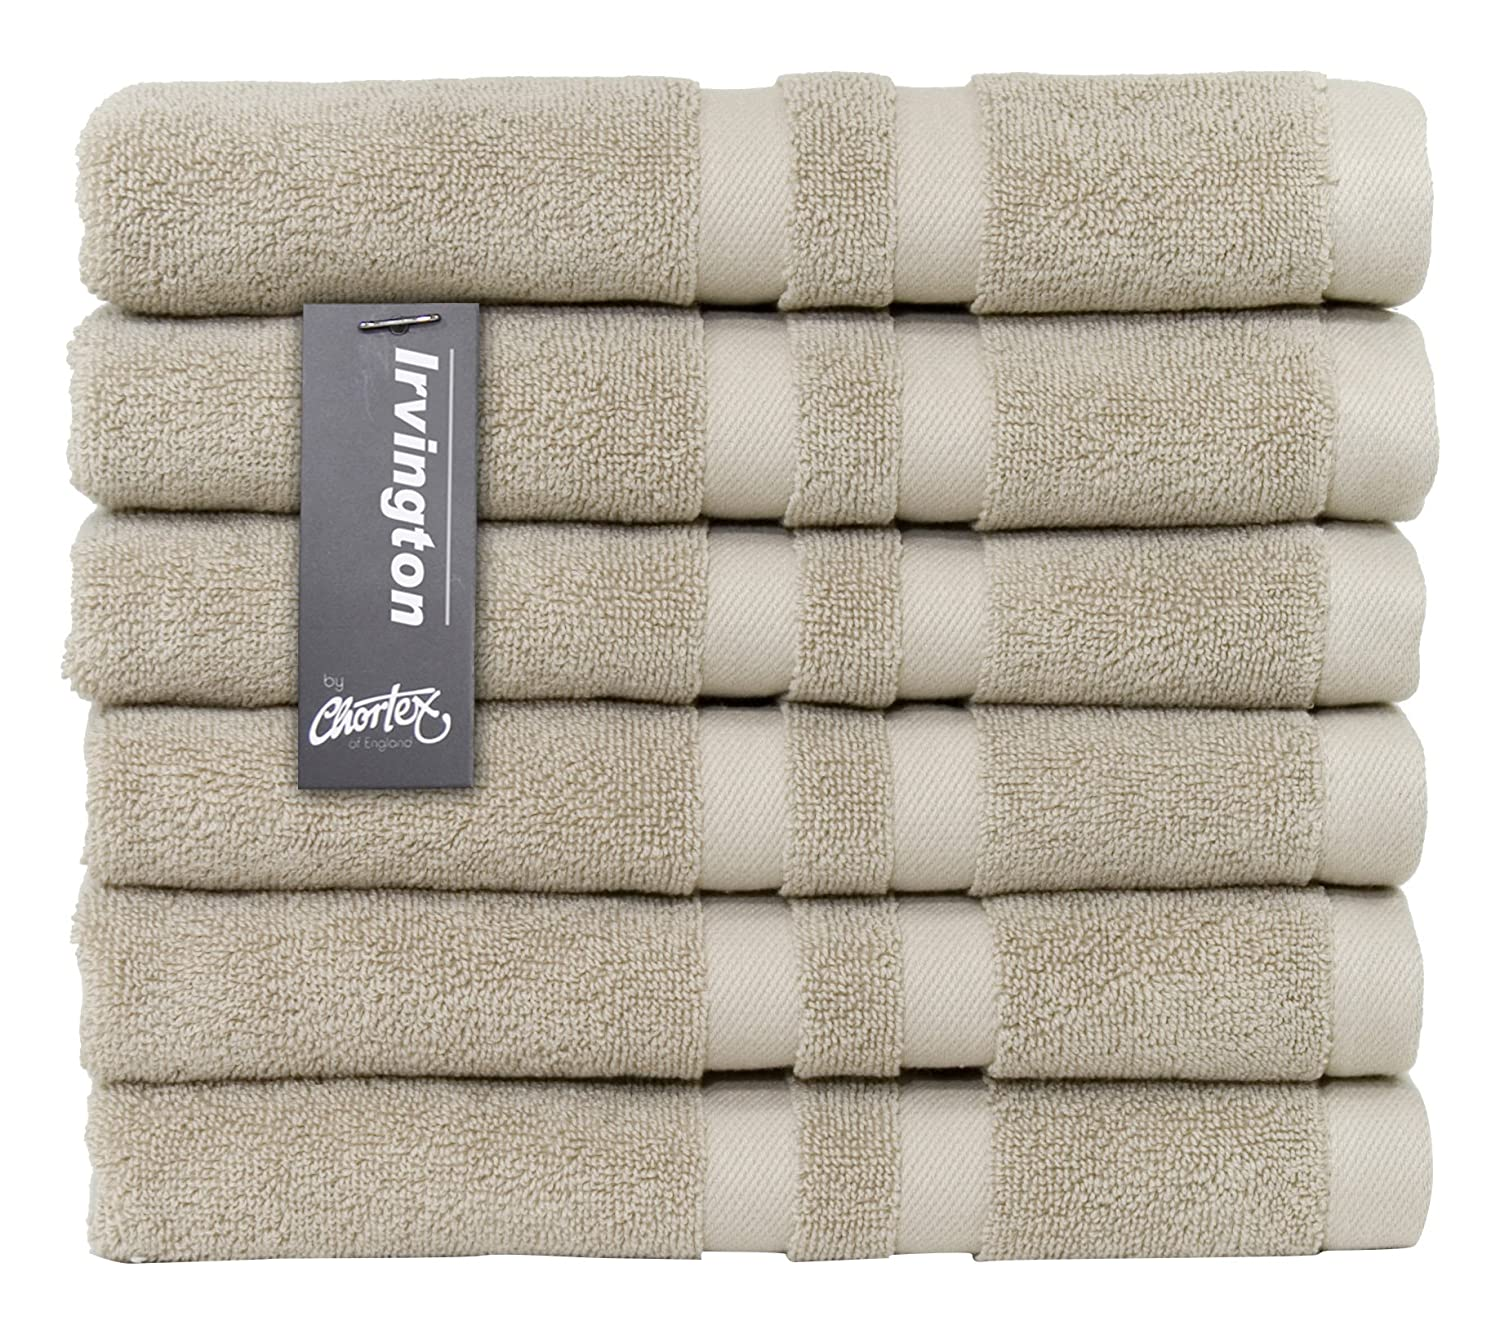 Bath Mat-Pack of 2 Cream Chortex Luxury 850gsm 100/% Turkish Cotton